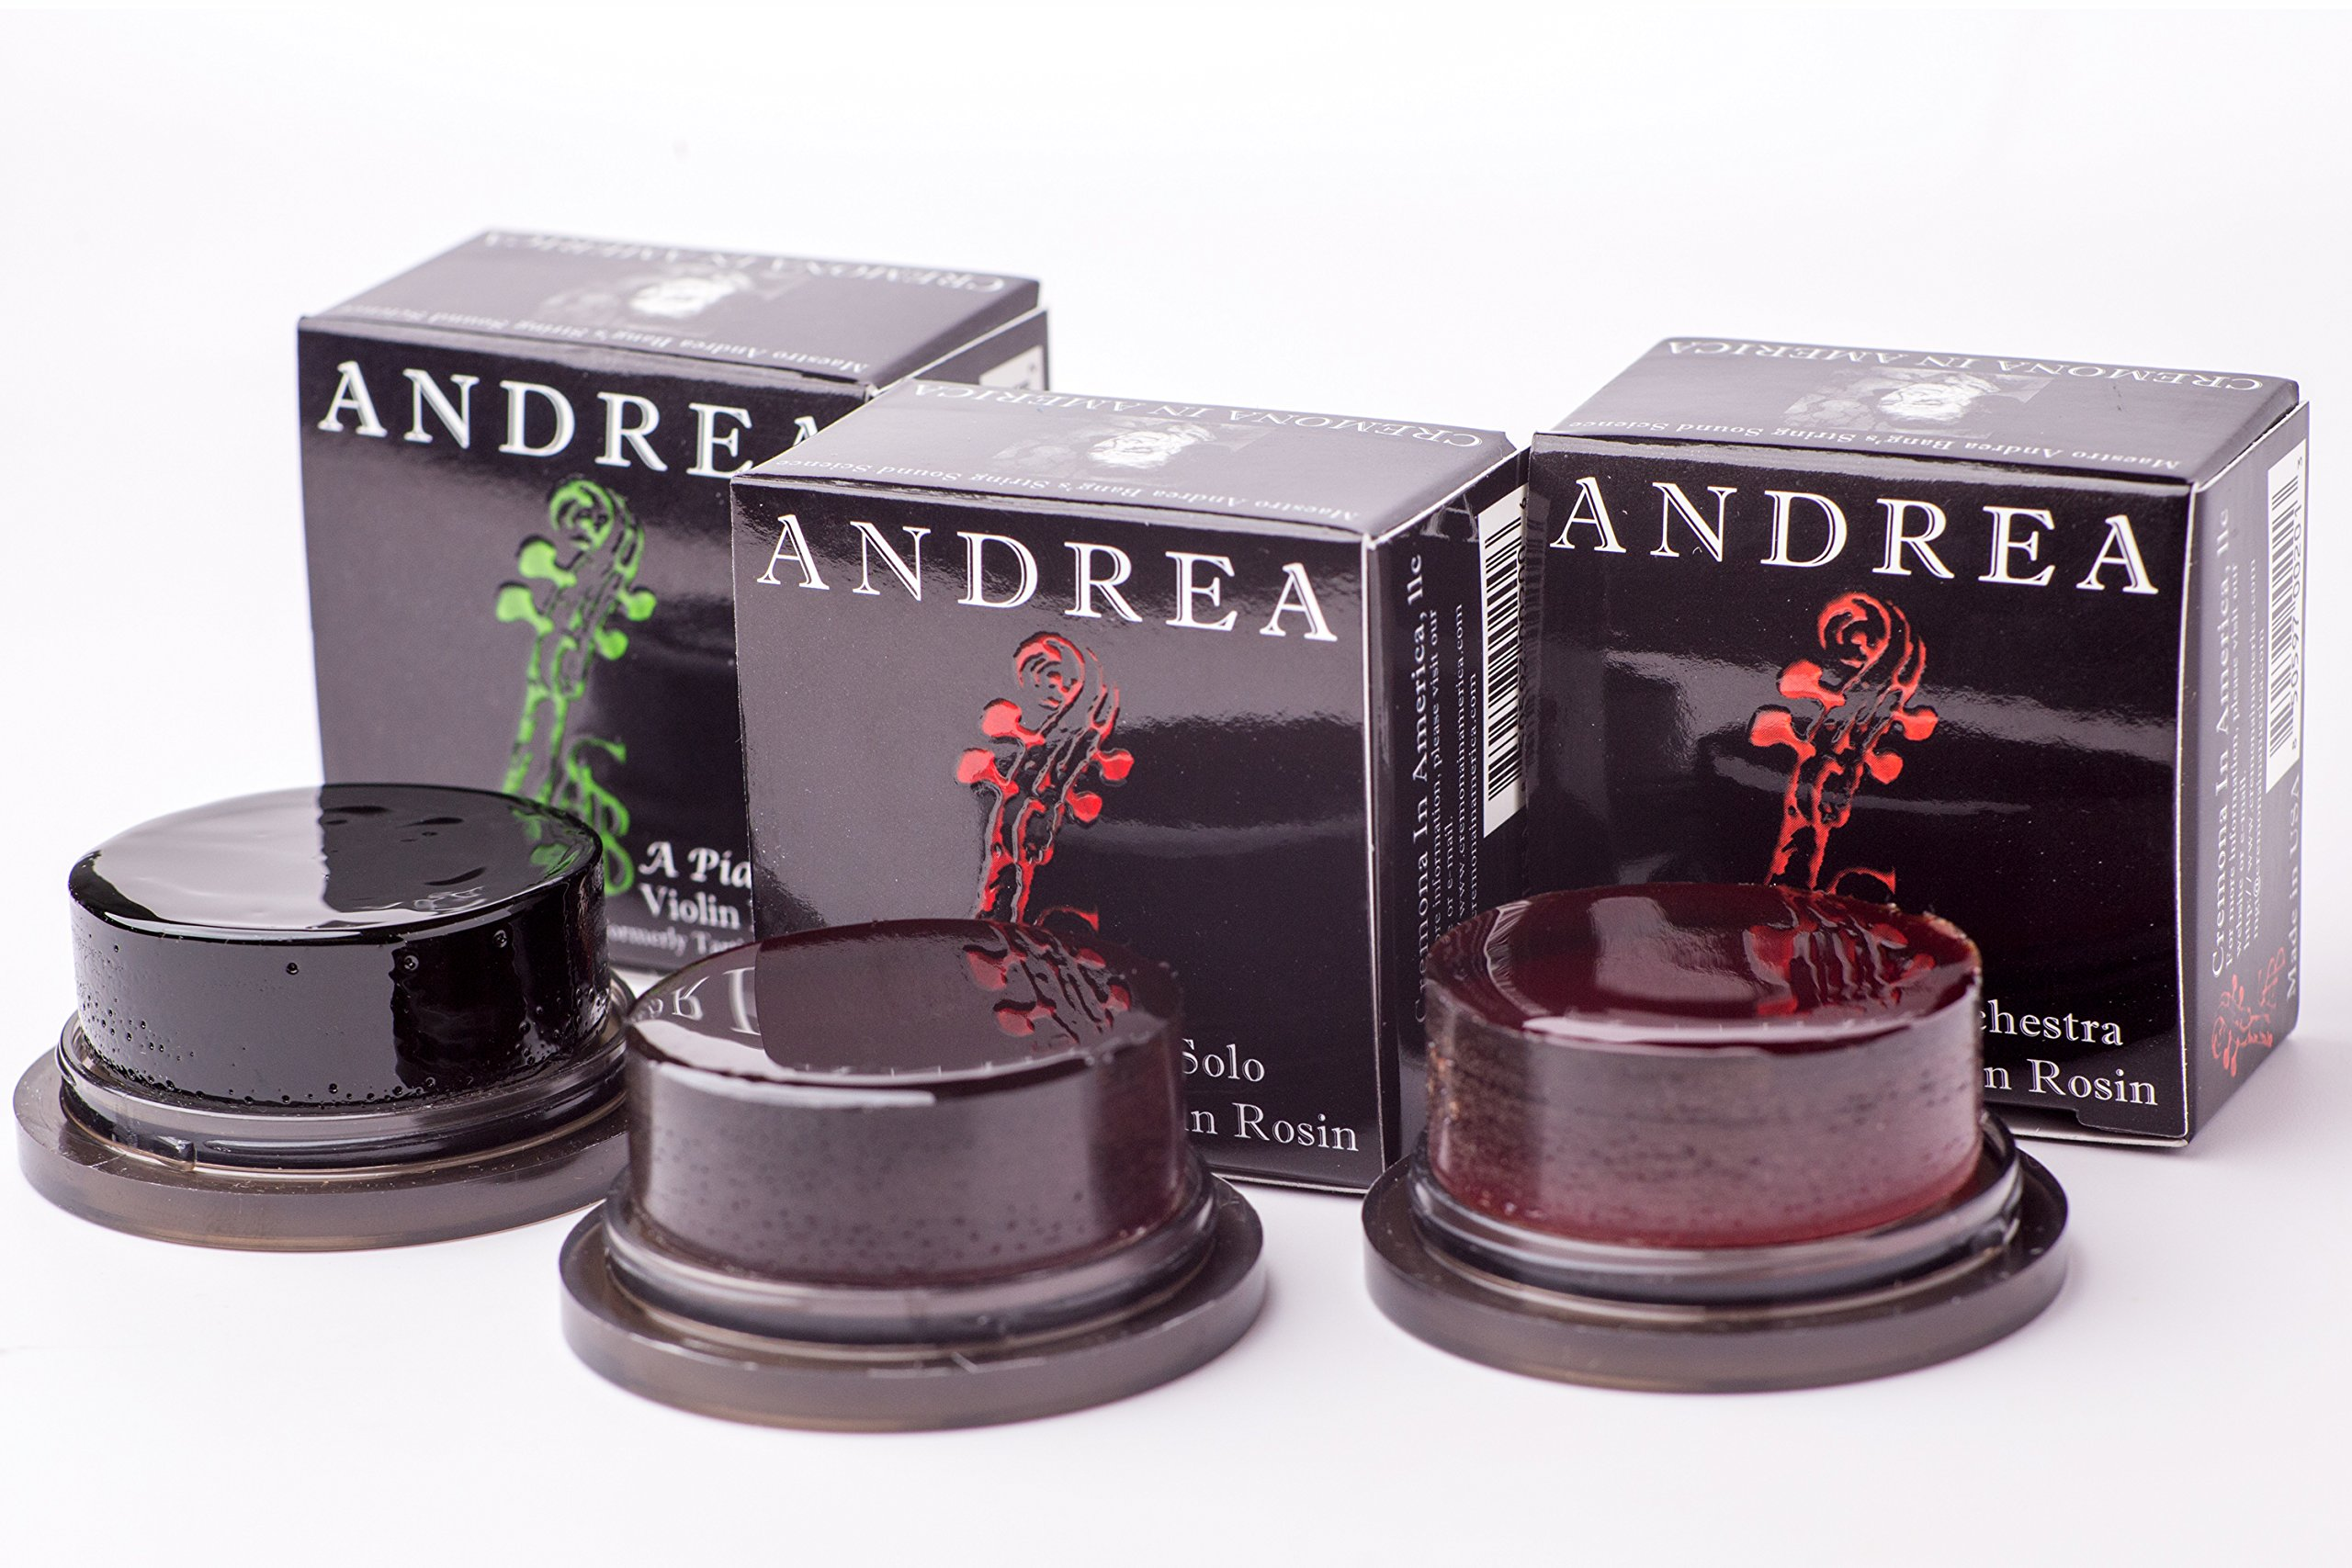 Andrea Rosin Gift Pack with A Solo, A Piacere and A Orchestra